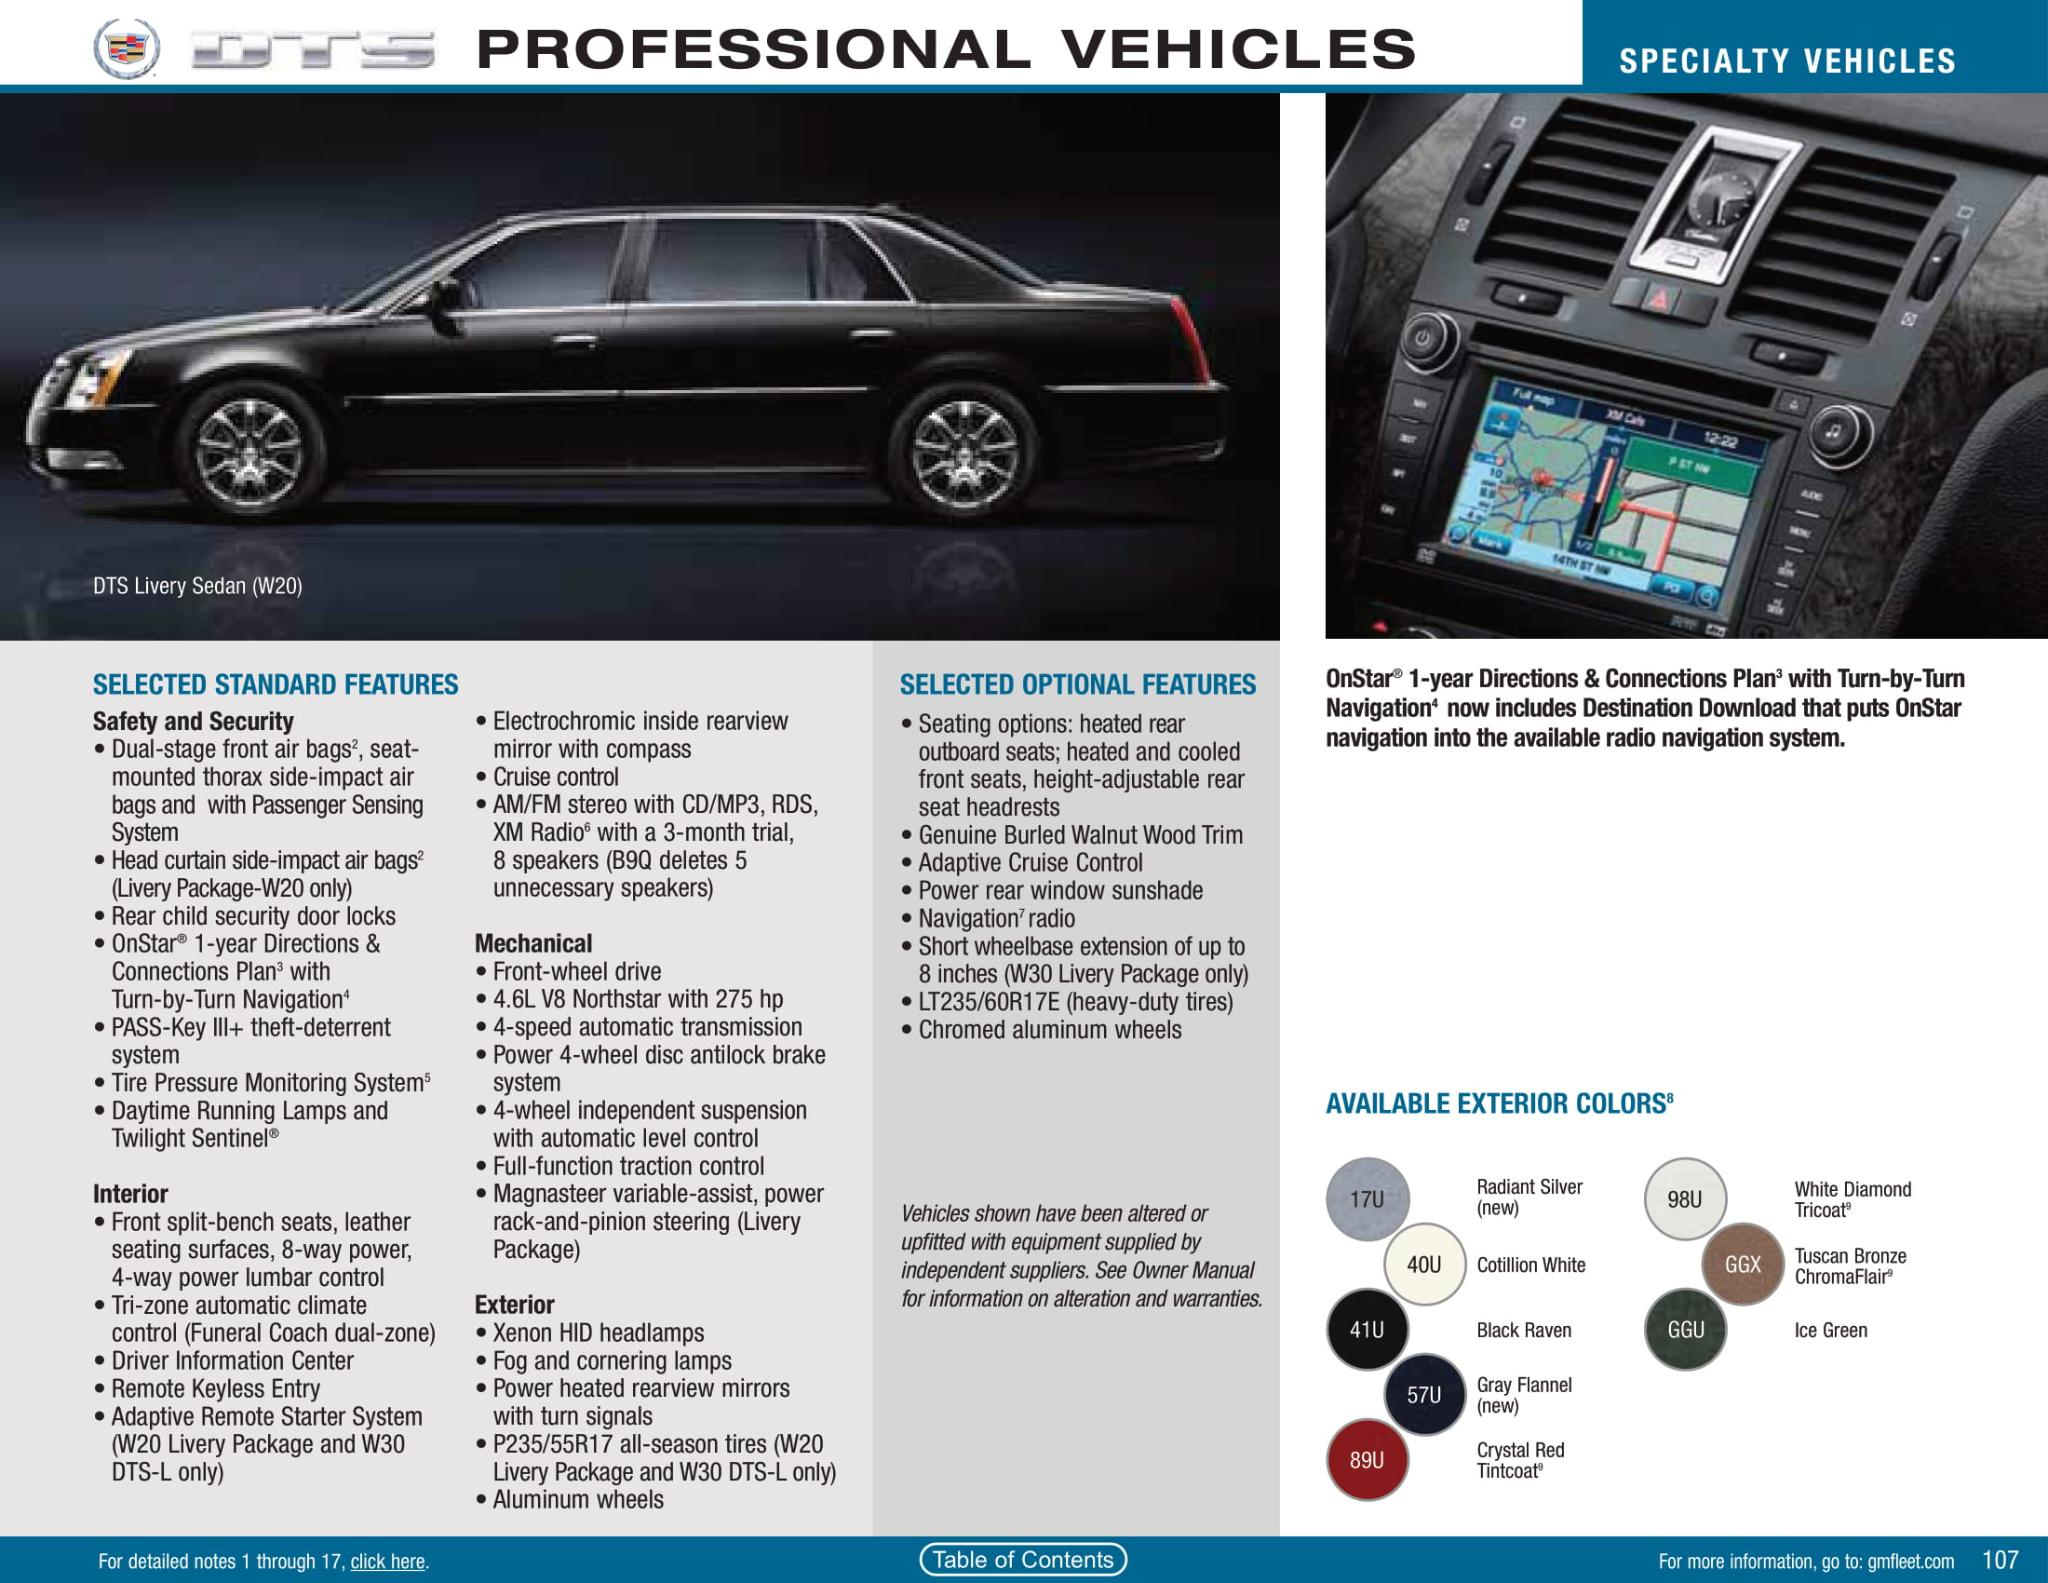 exterior colors options used on limo in 2010